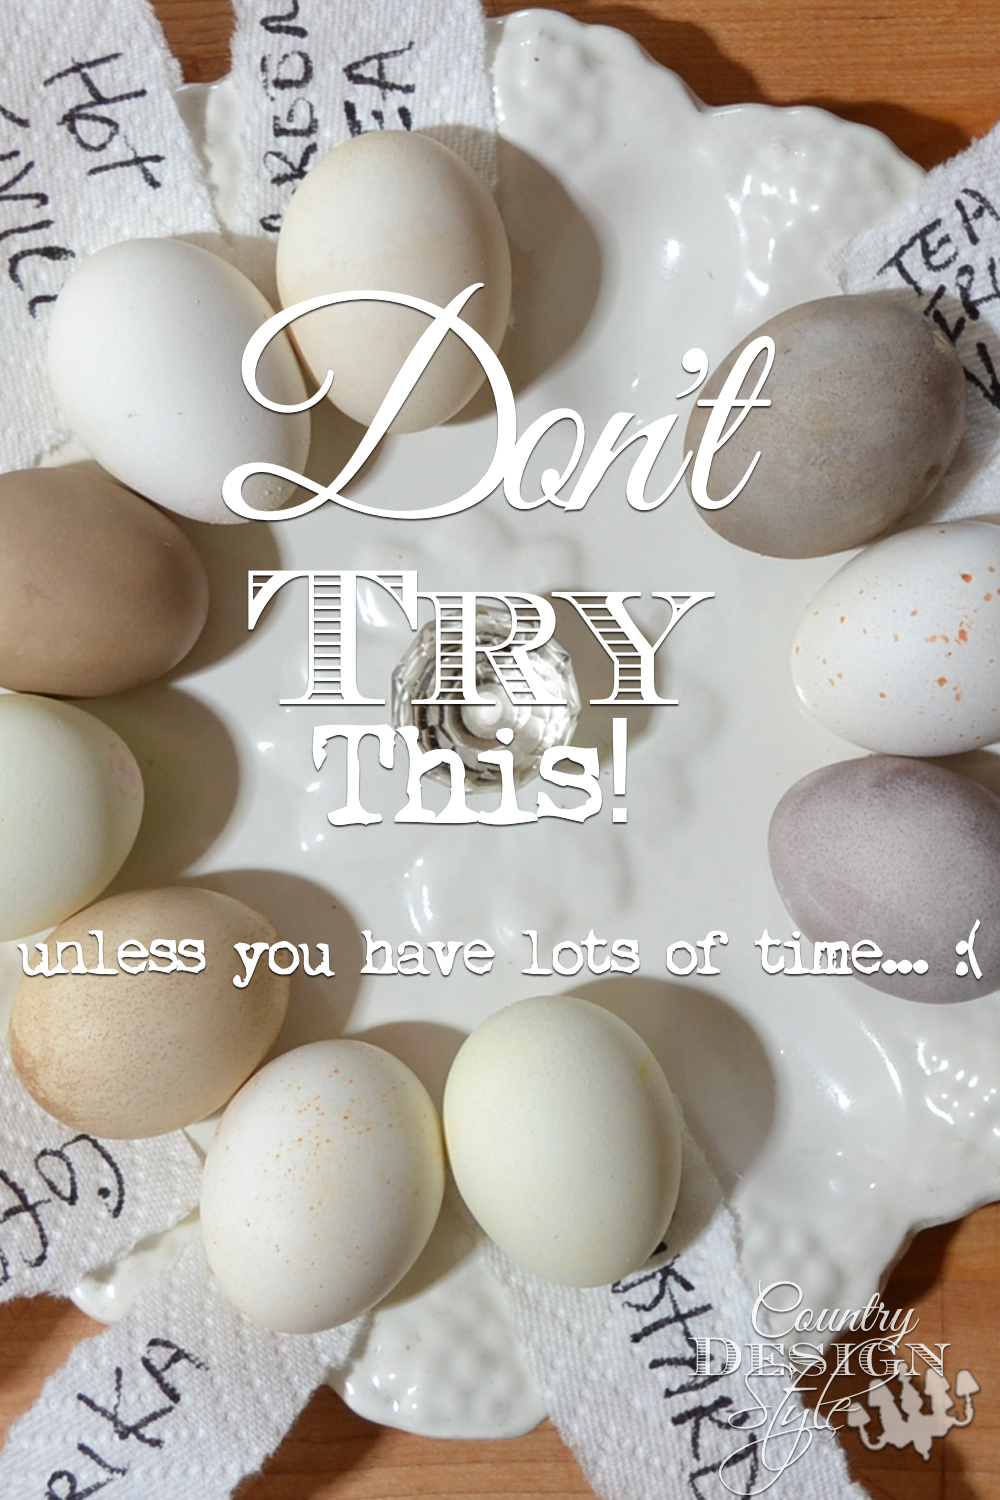 Do you ever have a bright idea that doesn't turn out like you expected? Here's one idea for dying eggs naturally that sorta worked..if you have time for this DIY! Country Design Style